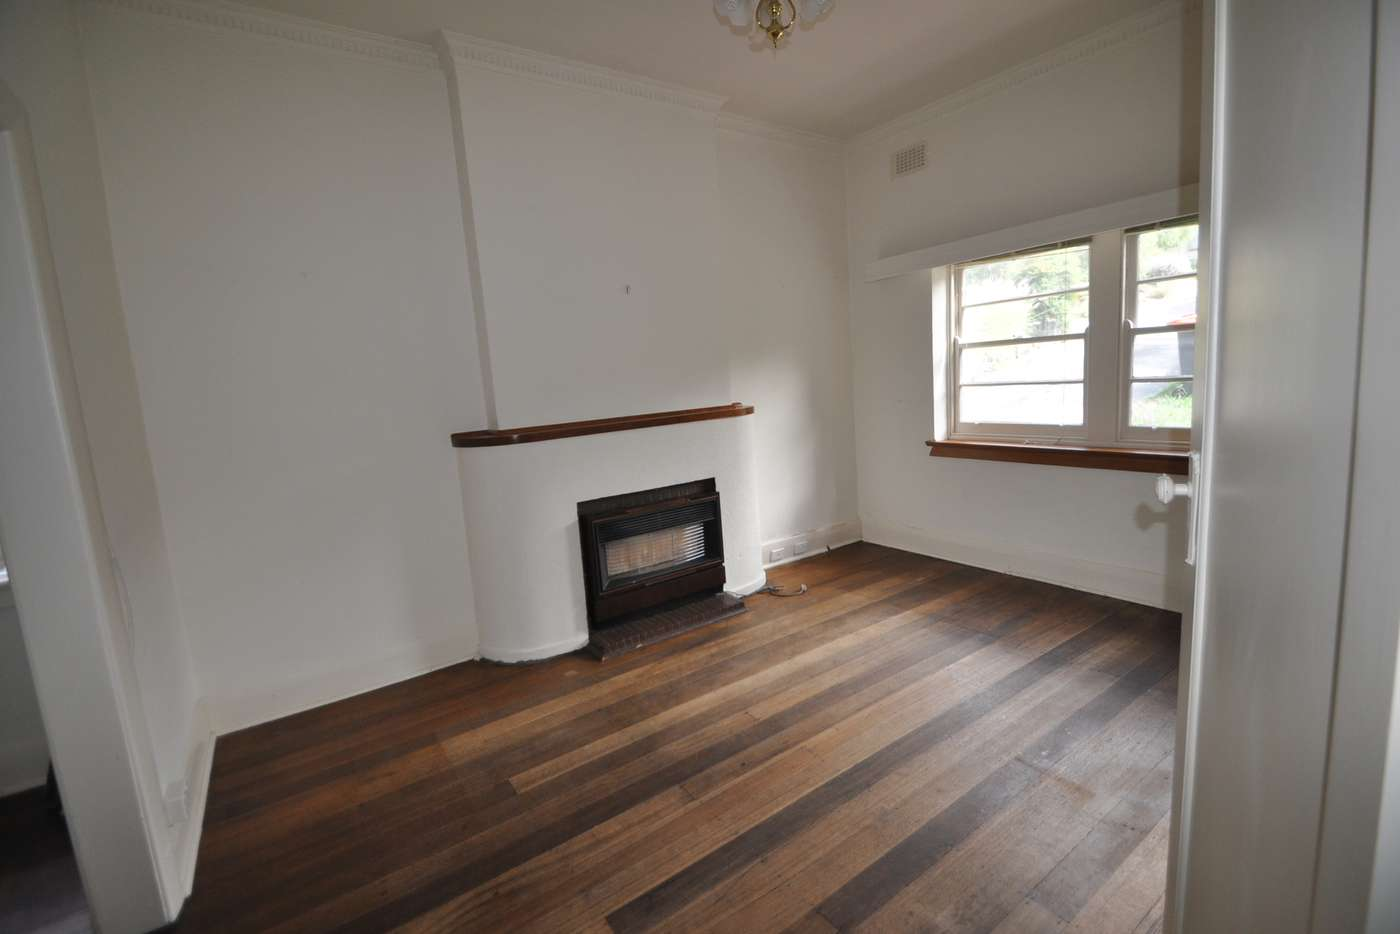 Sixth view of Homely house listing, 96 Valley Parade, Glen Iris VIC 3146